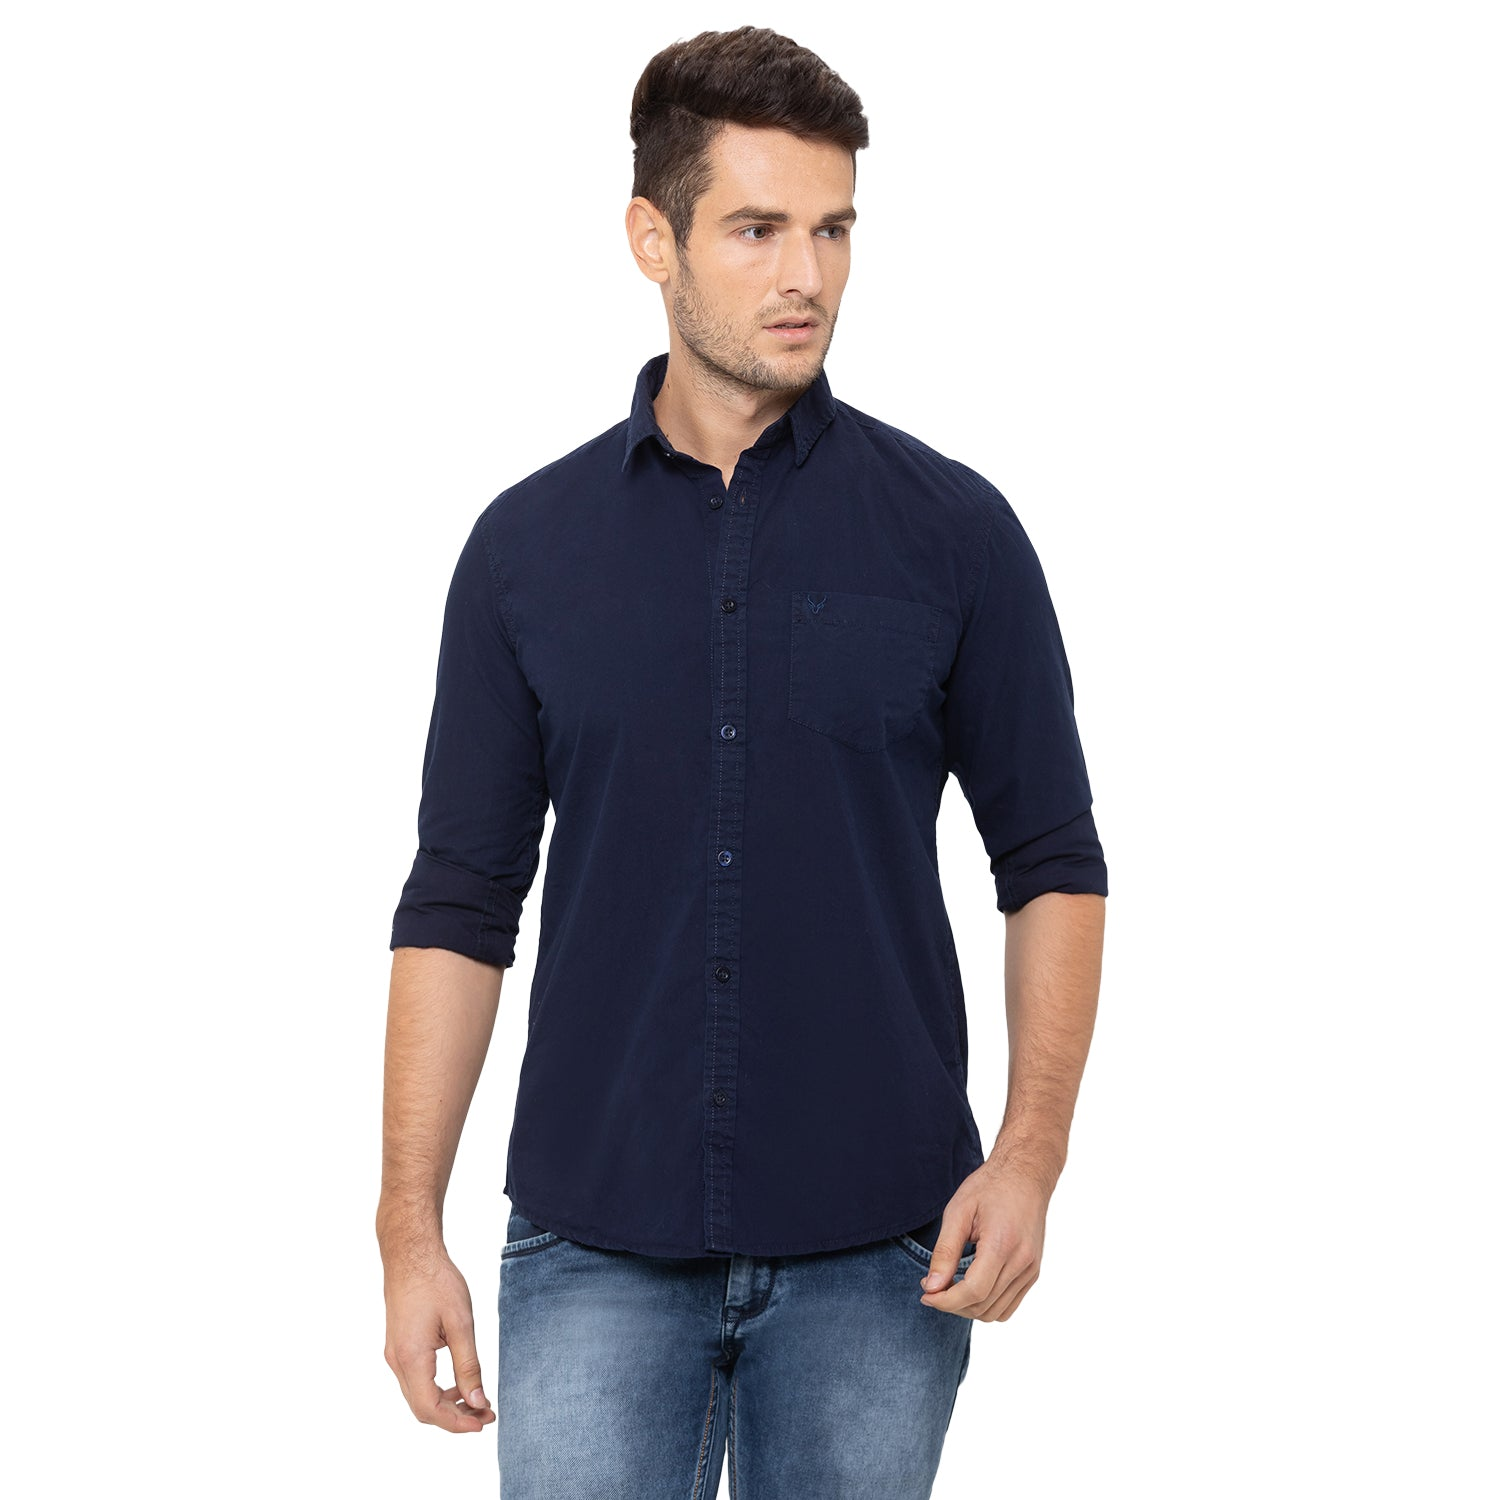 Globus Navy Blue Solid Shirt-1